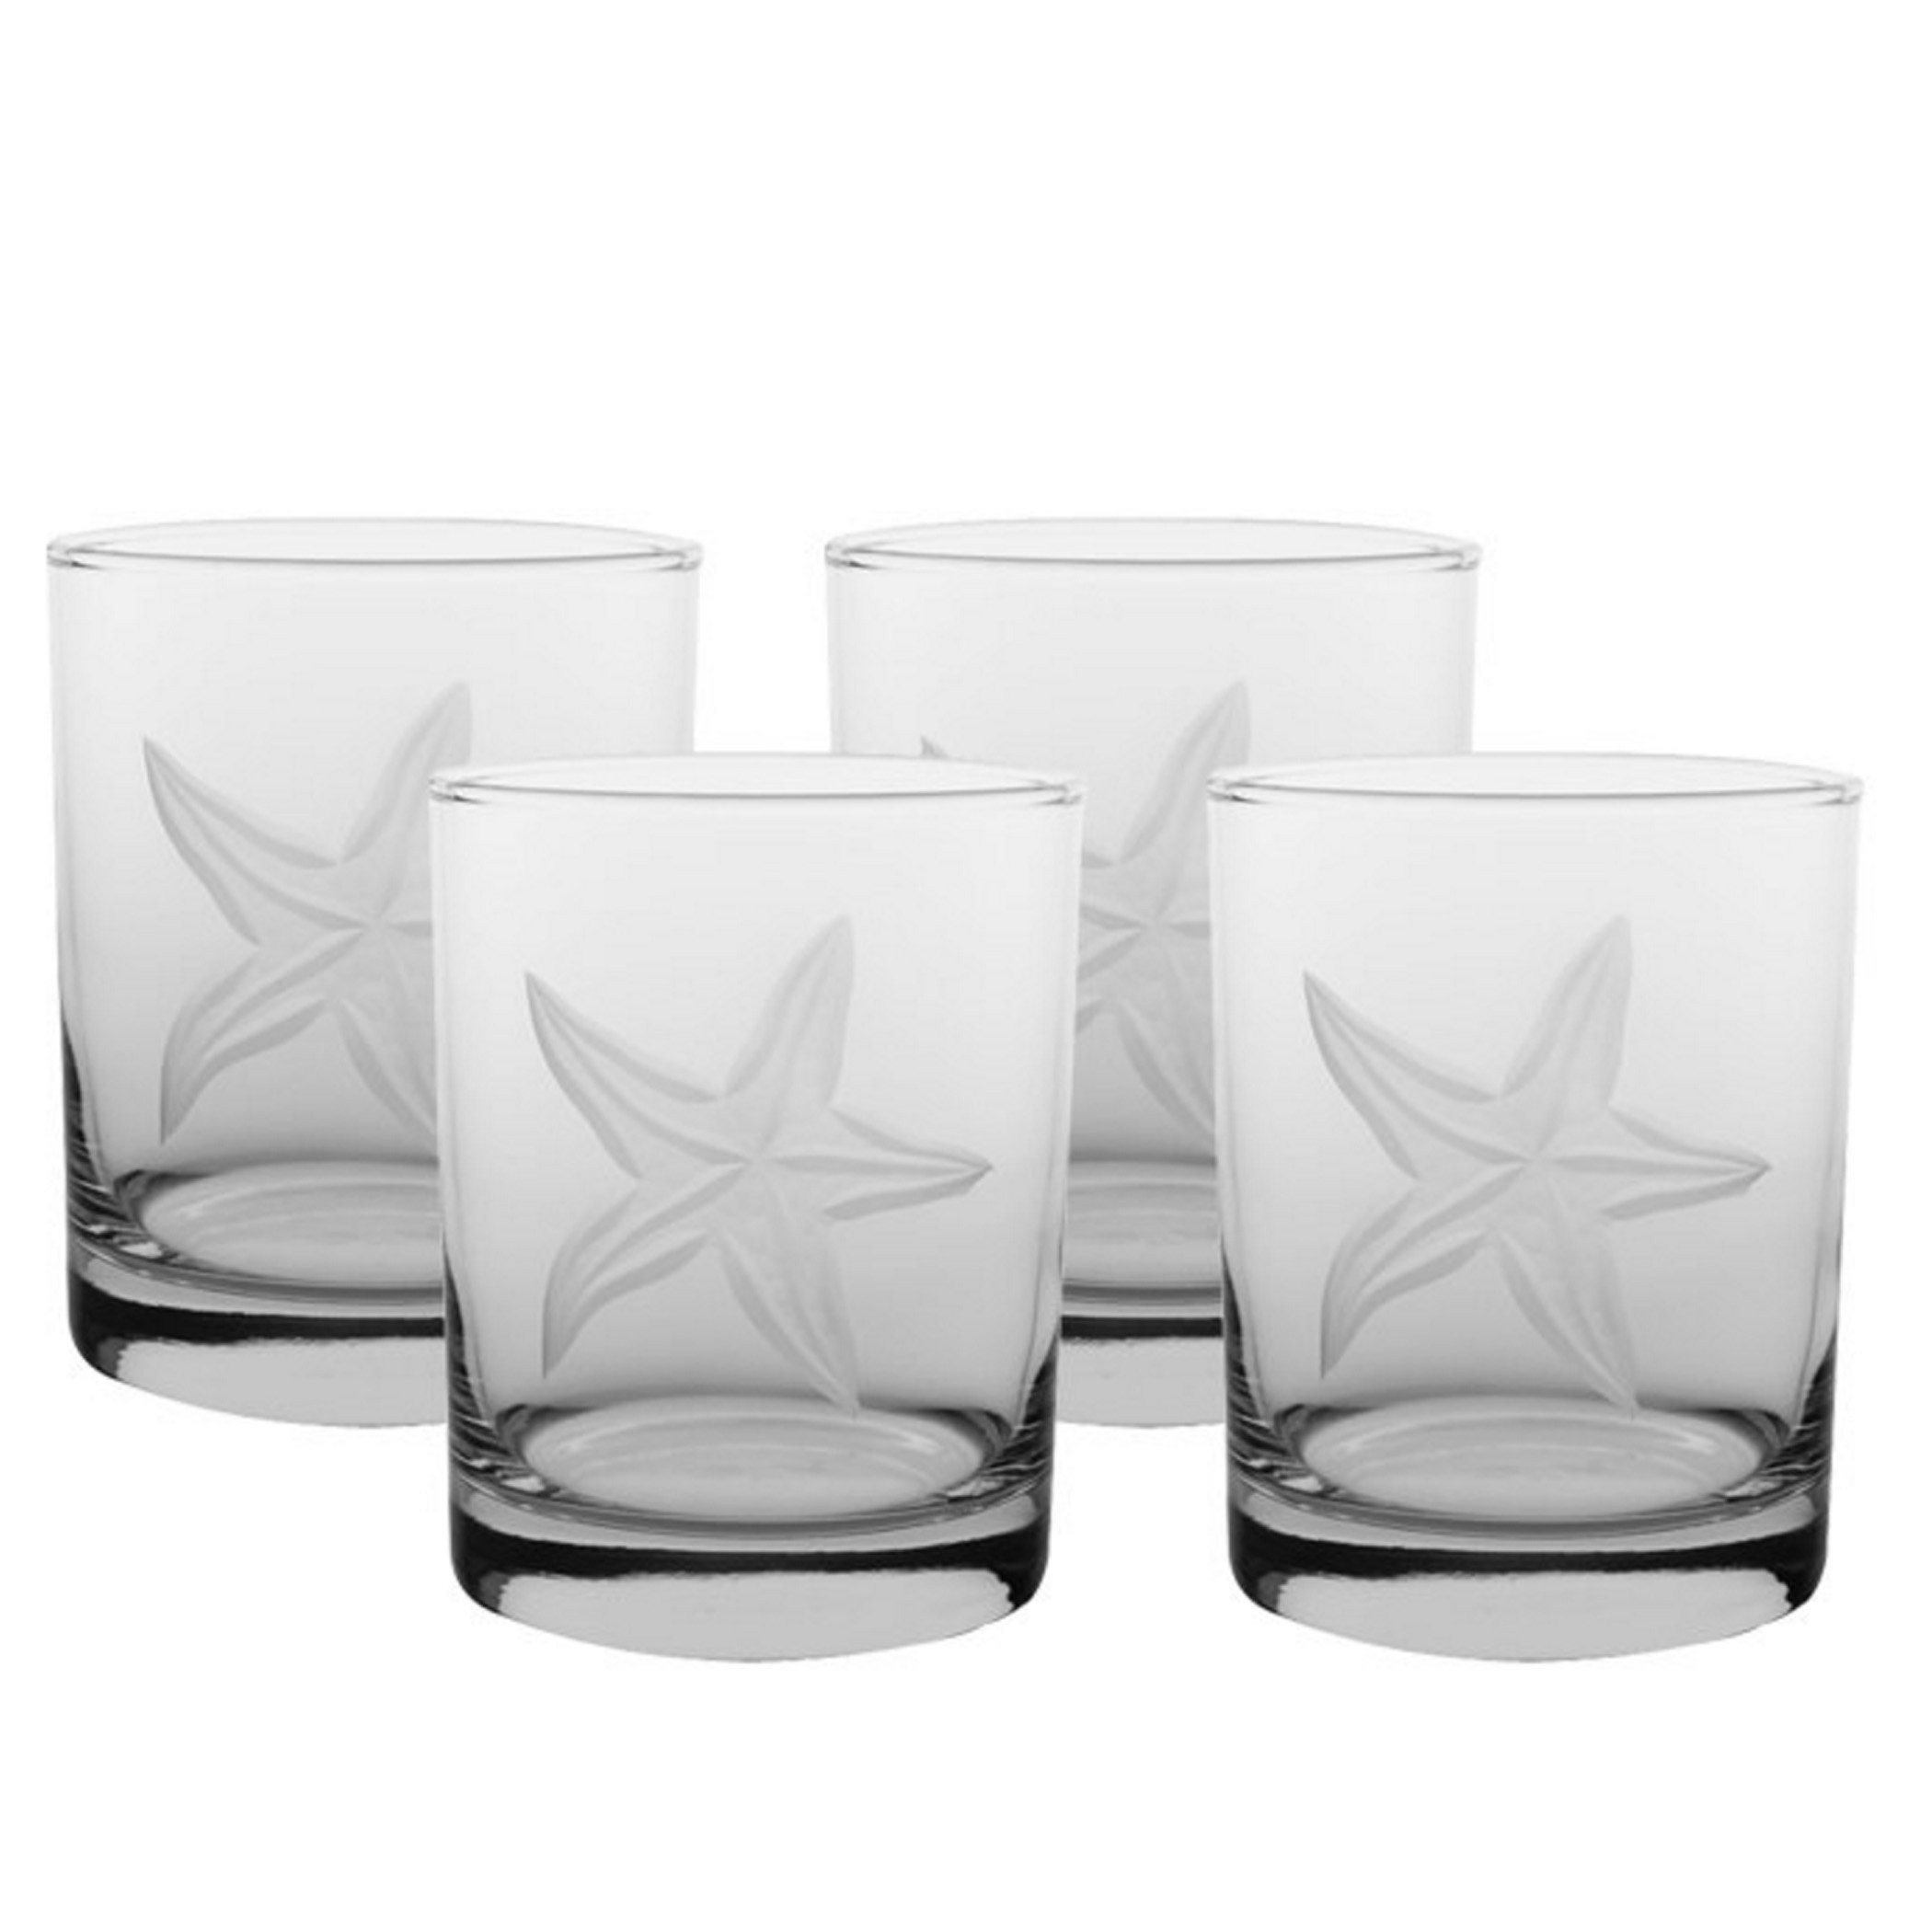 Rolf Glass 400006S/4 Starfish Double Old Fashioned Glass, Clear